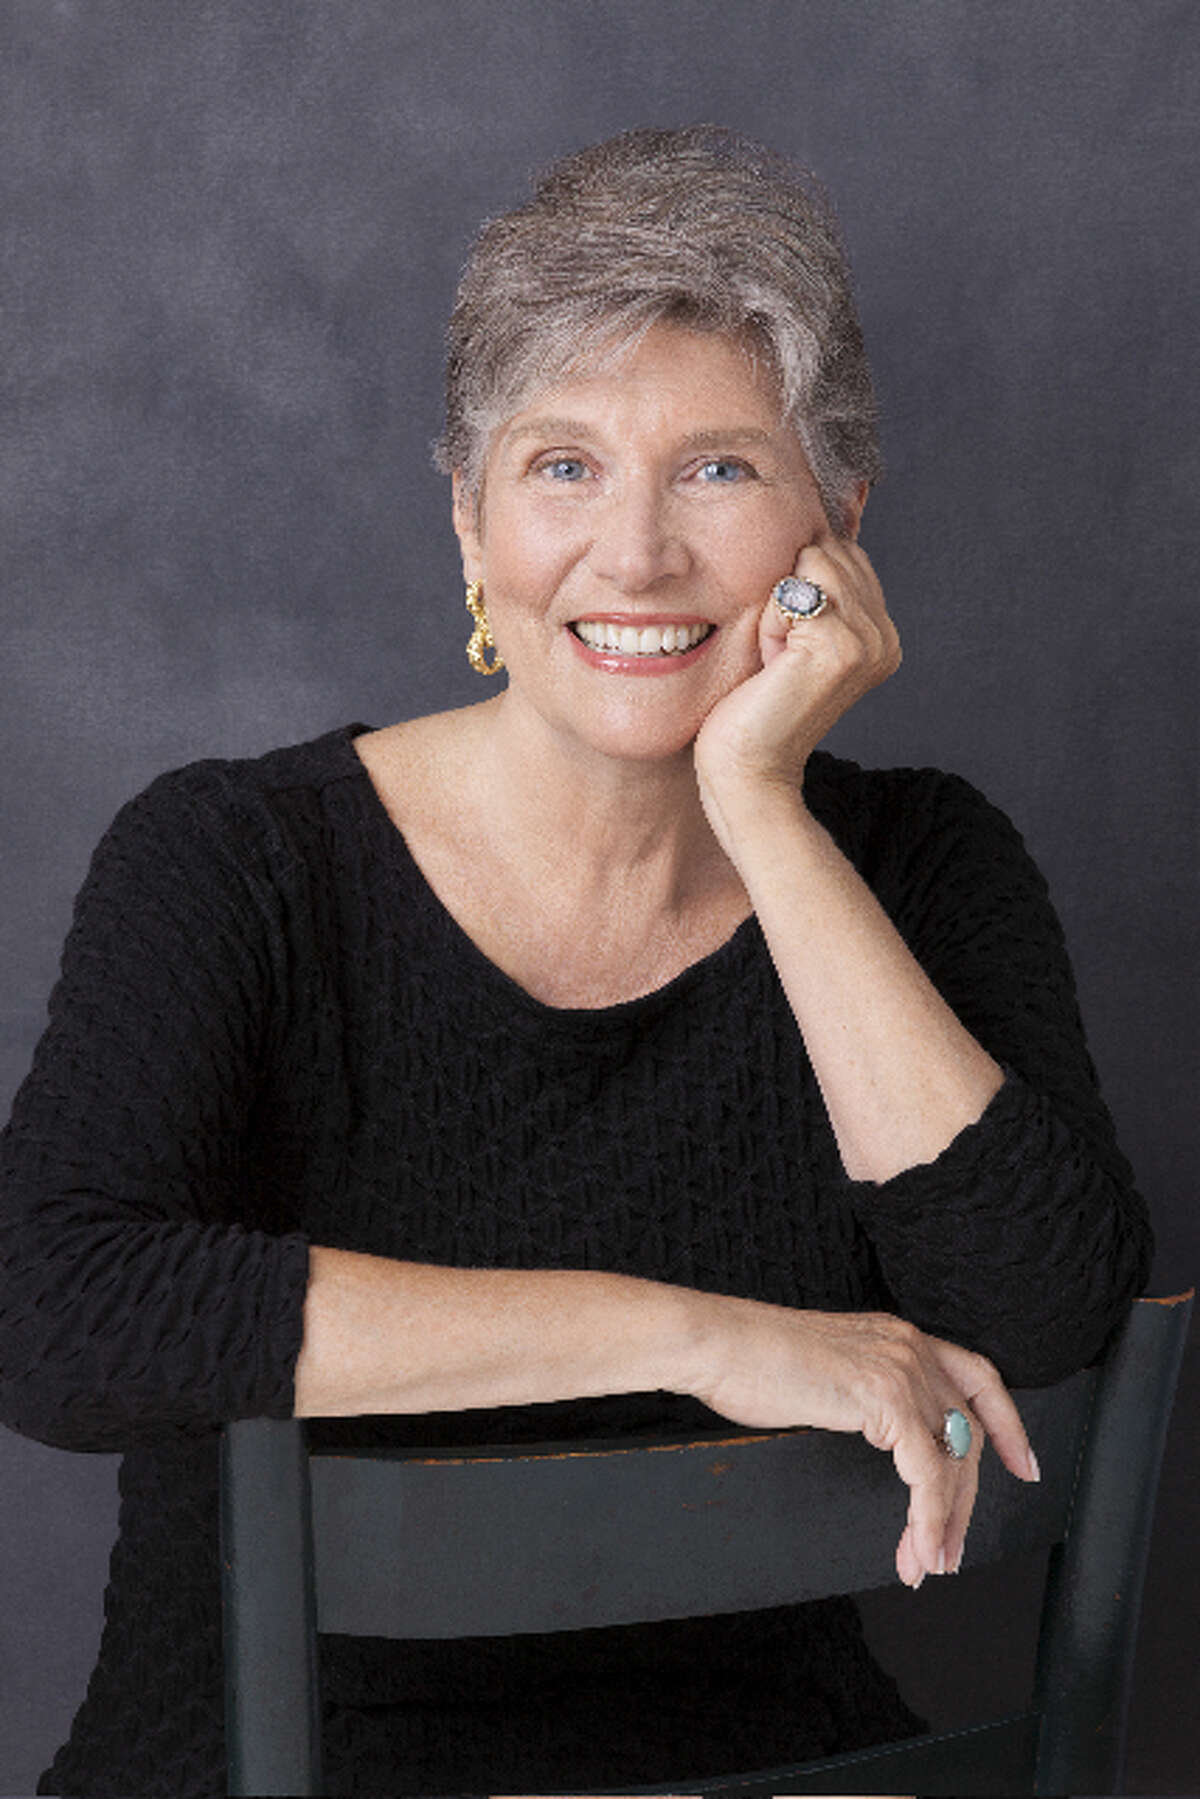 """Barbara Bonner, author of """"Inspiring Generosity"""" (Wisdom Publications, 2014), a collection of inspiring stories as well as quotes and poems from the world's great writers, will appear at Book House of Stuyvesant Plaza in Albany on Thursday, May 22 to sign copies of her book. (Courtesy Barbara Bonner)"""